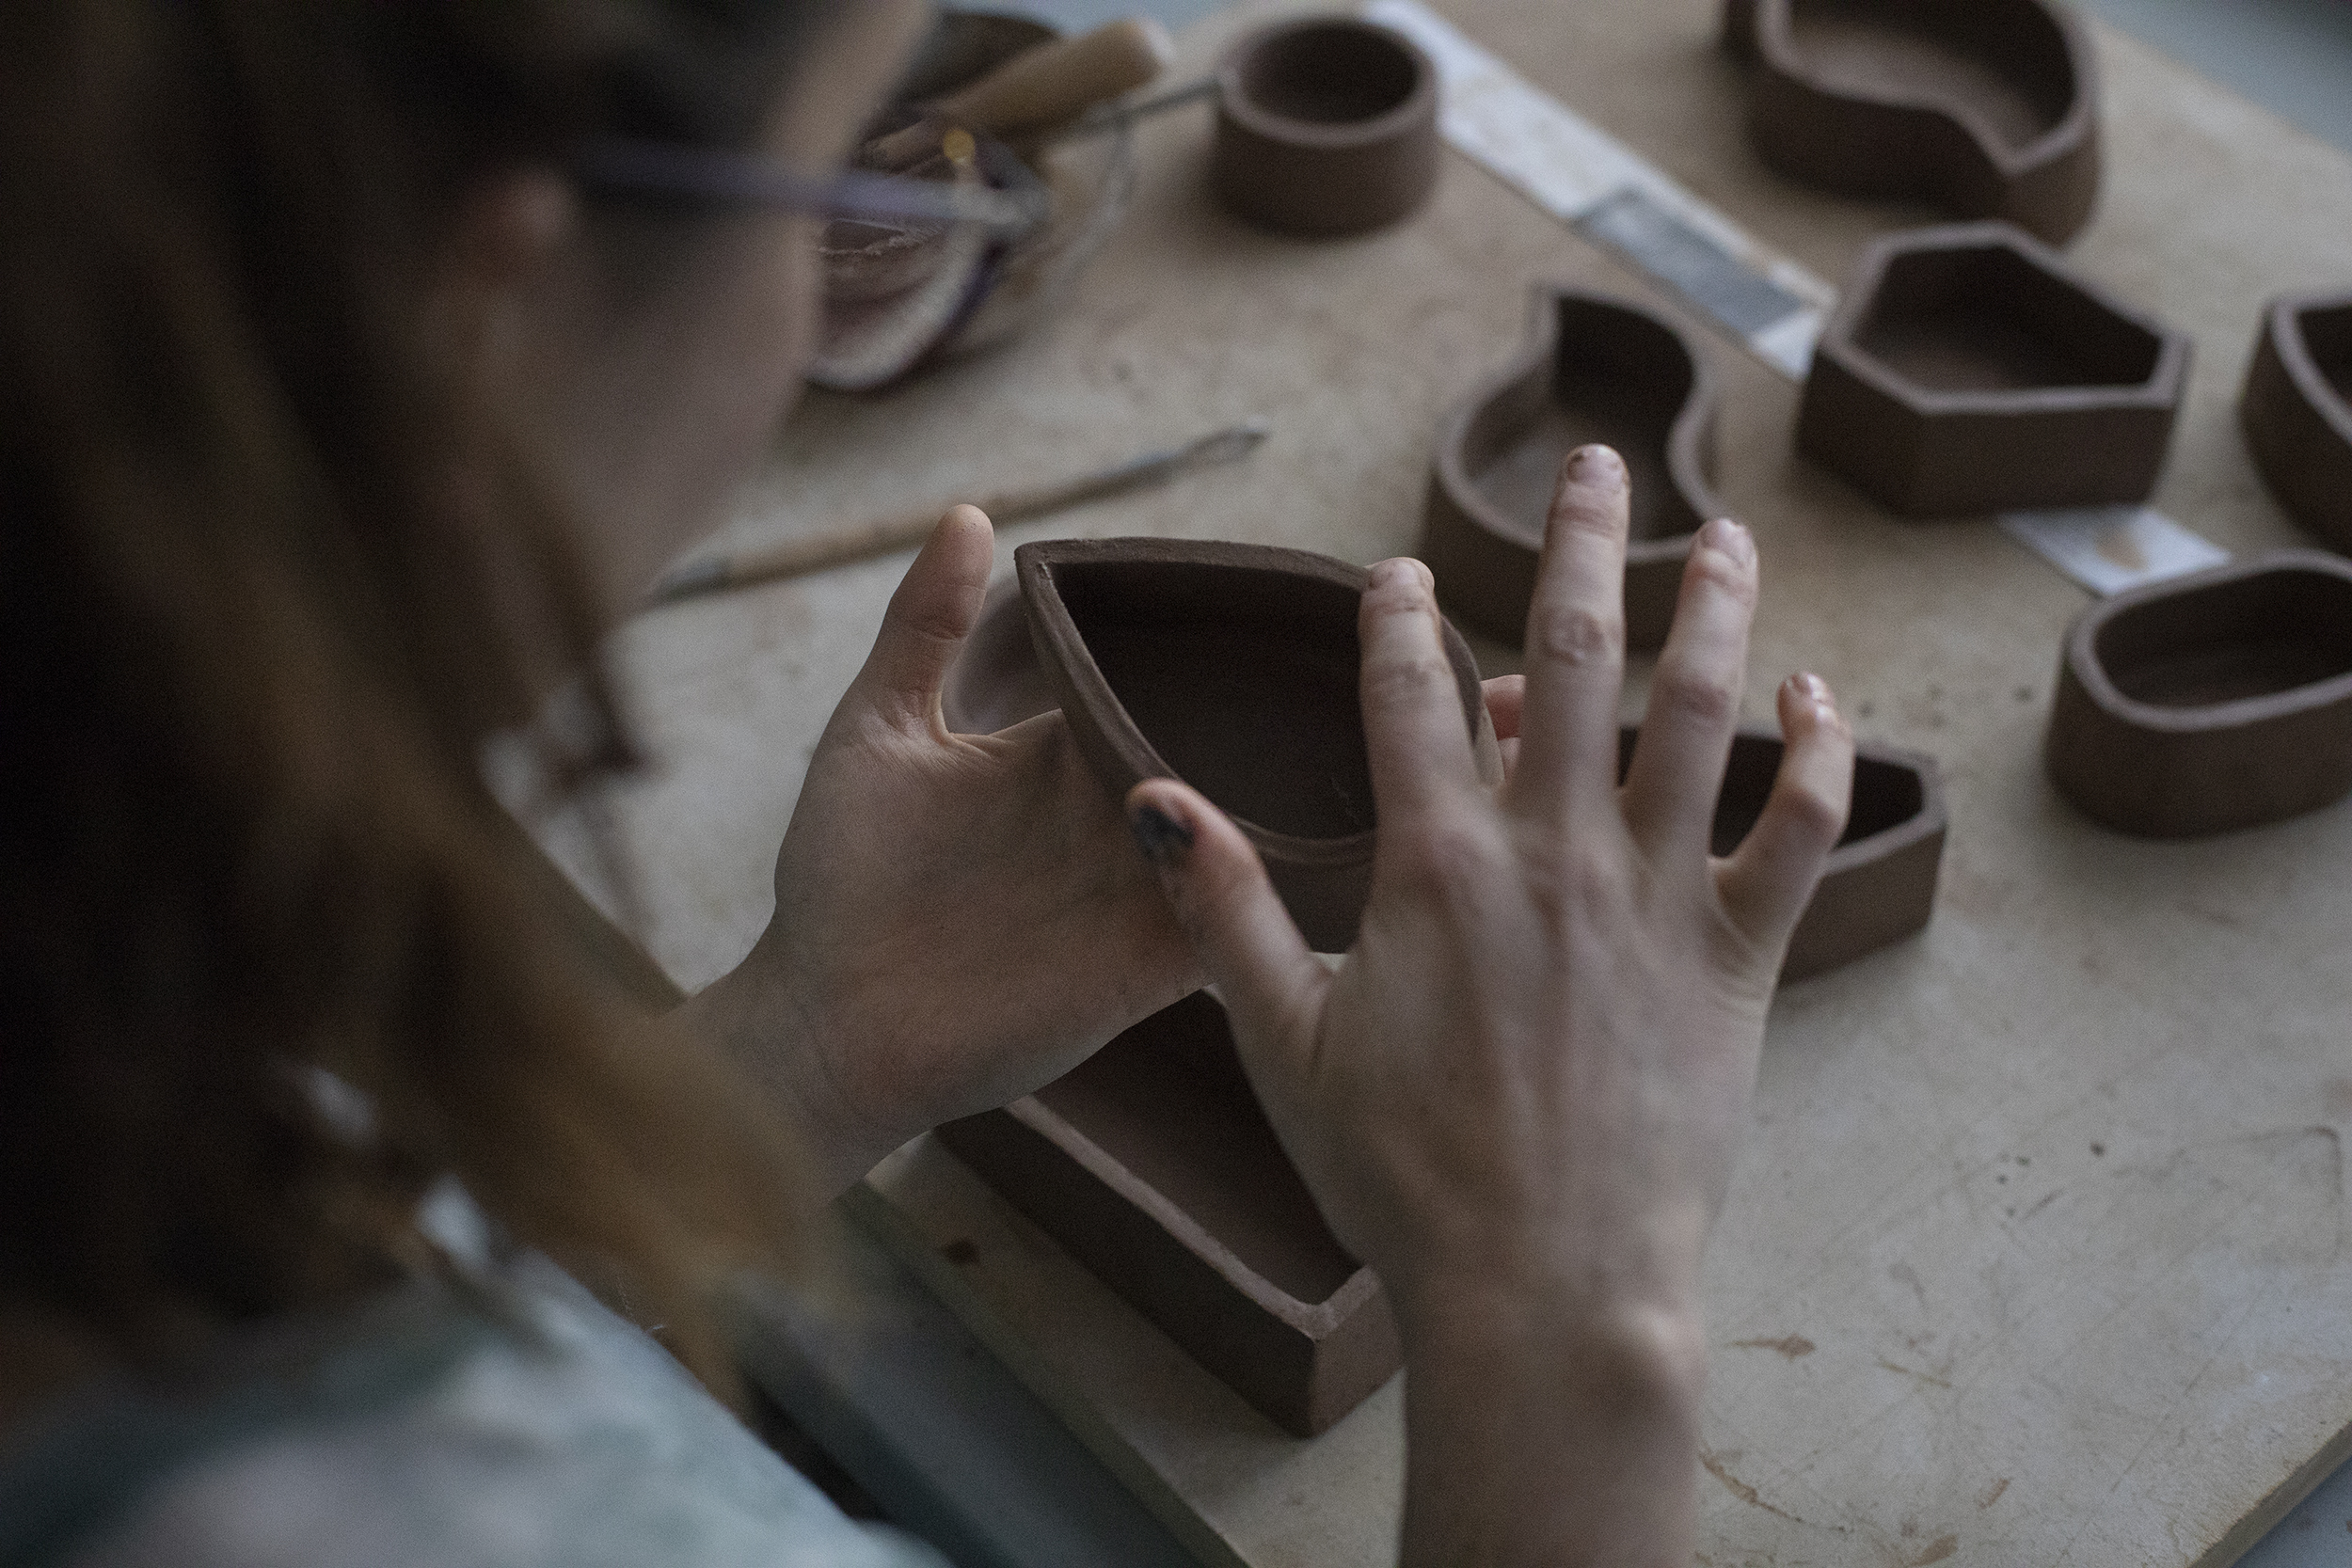 Overhead shot looking over Ayla Gizlice's shoulder as she shapes a clay vessel in her hands.